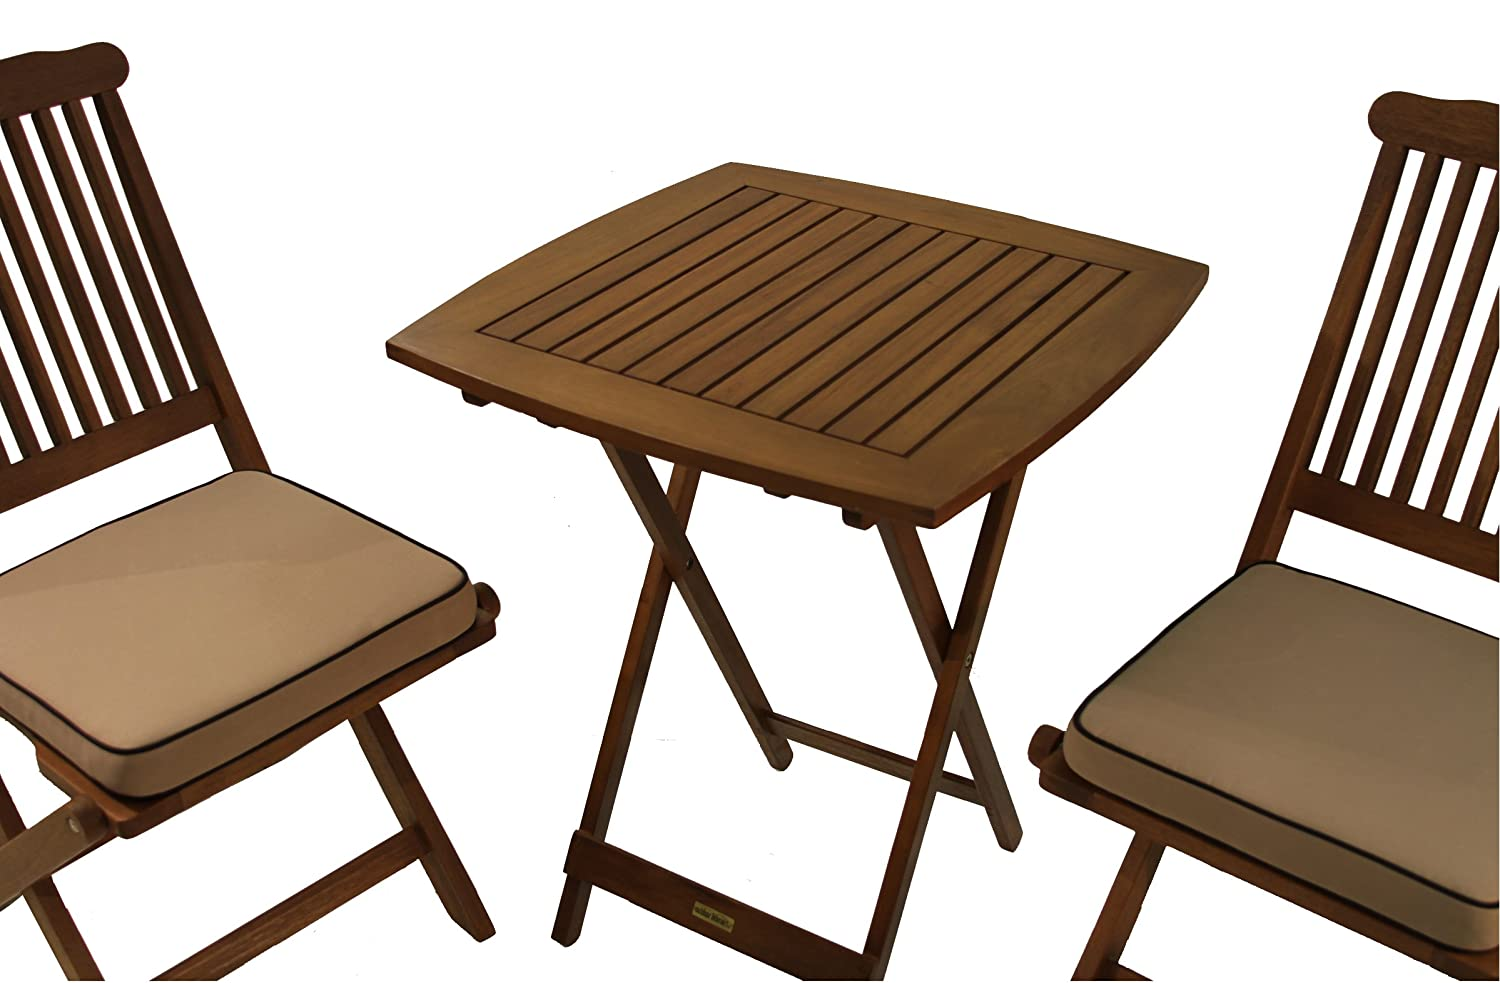 Best of Times 13169W2301 Classic Bamboo 30 Padded Bar Stools-Set of 4 , Brown